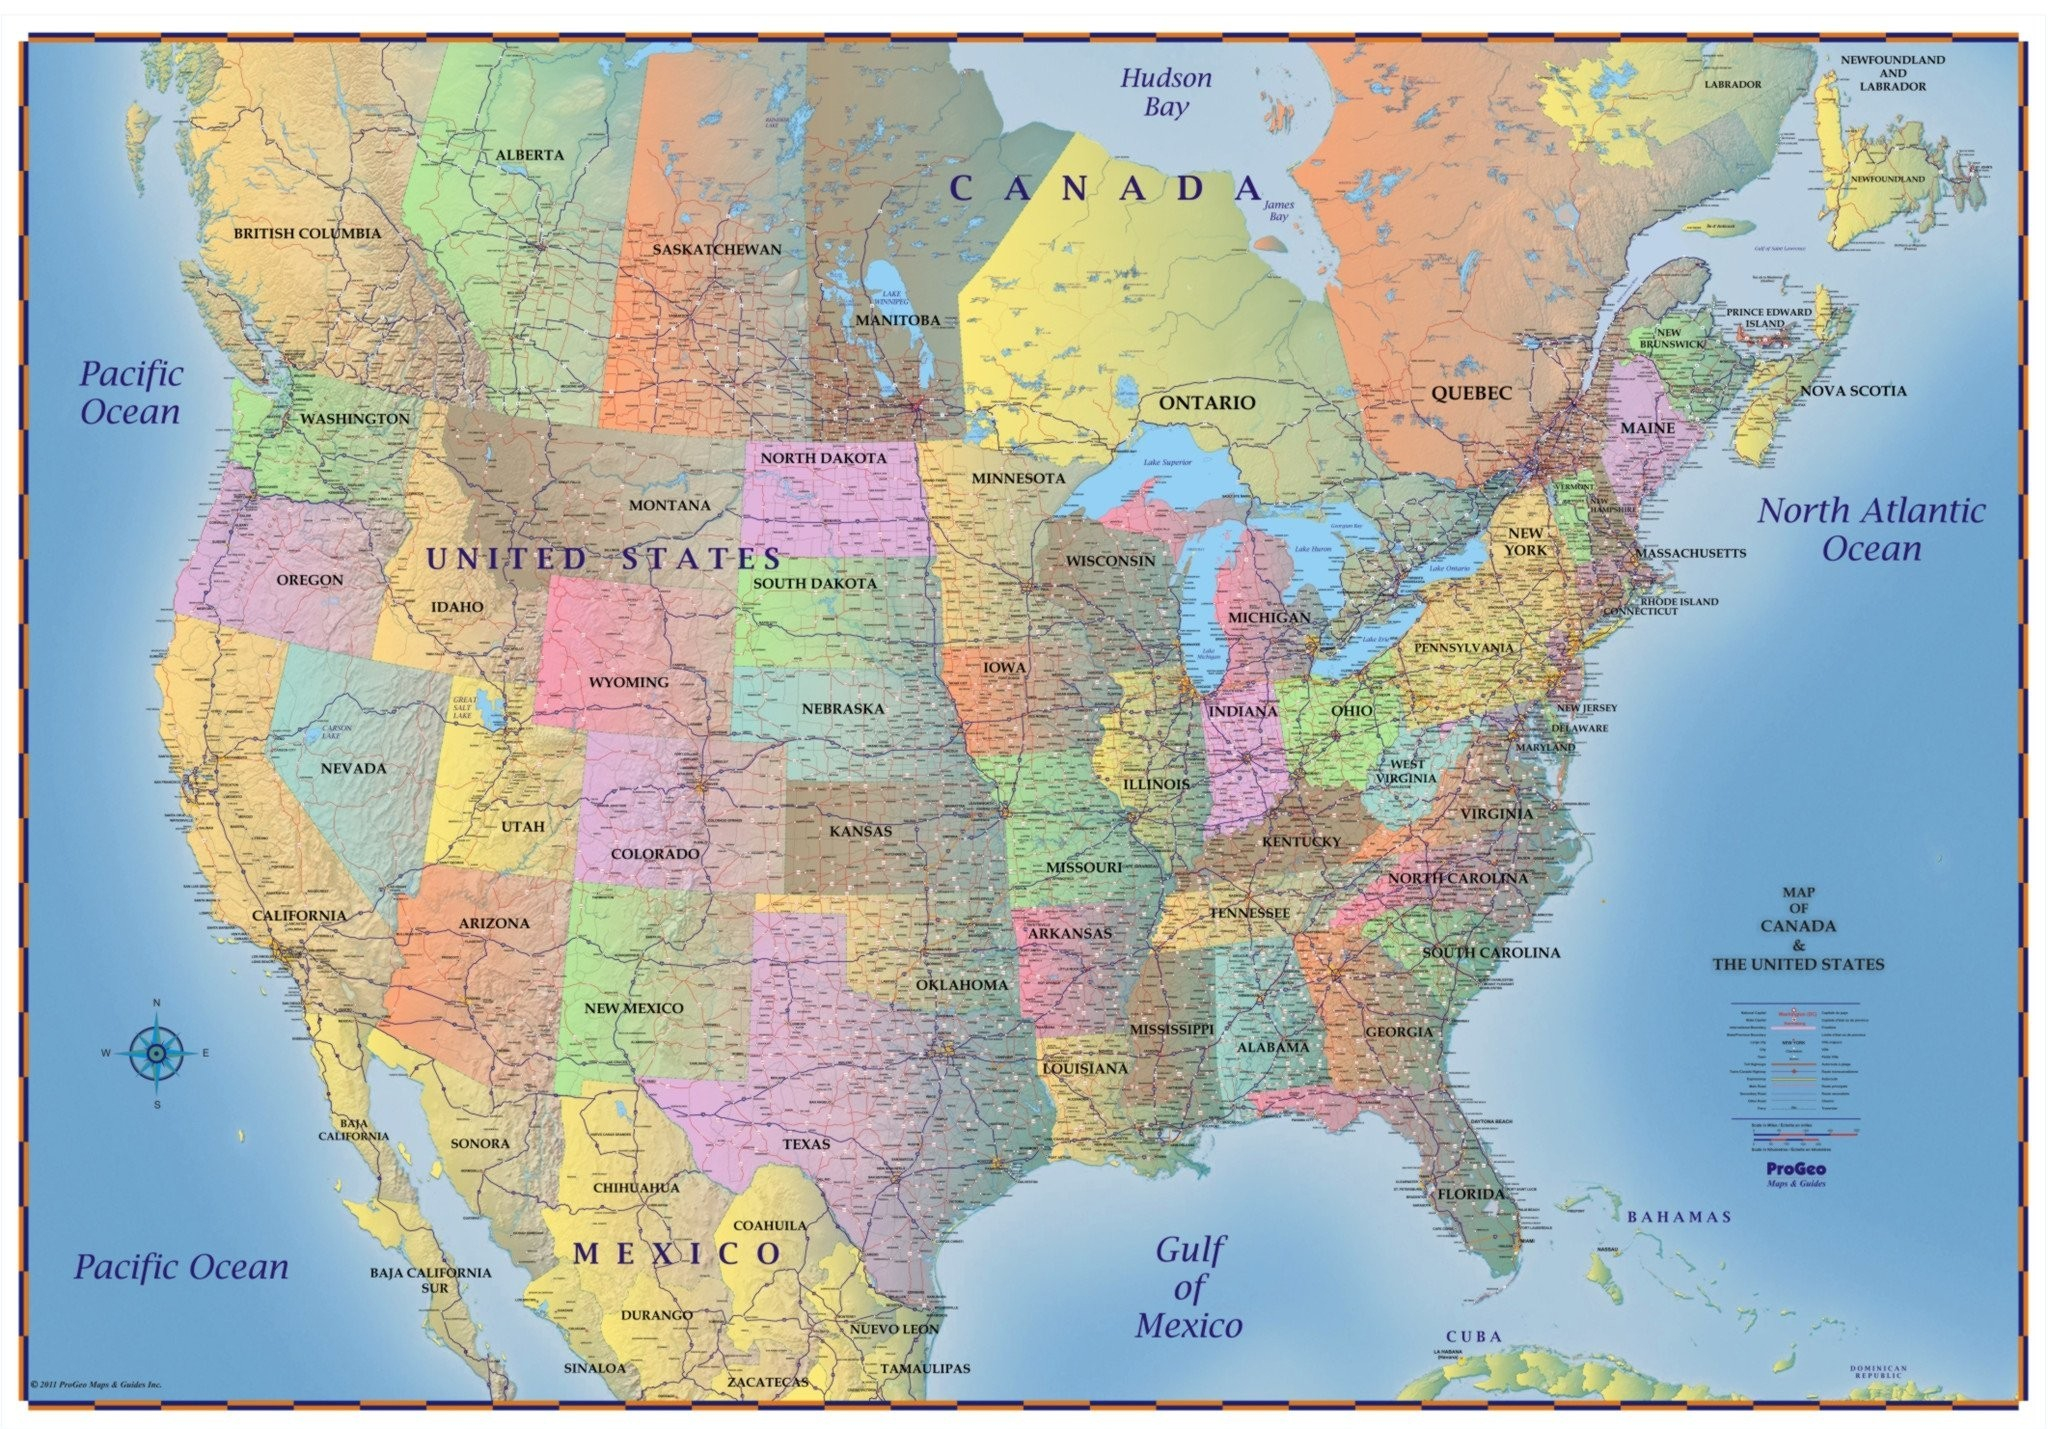 United States Map With Canada And Mexico New Usa Canada Map Toronto - Toronto California Map